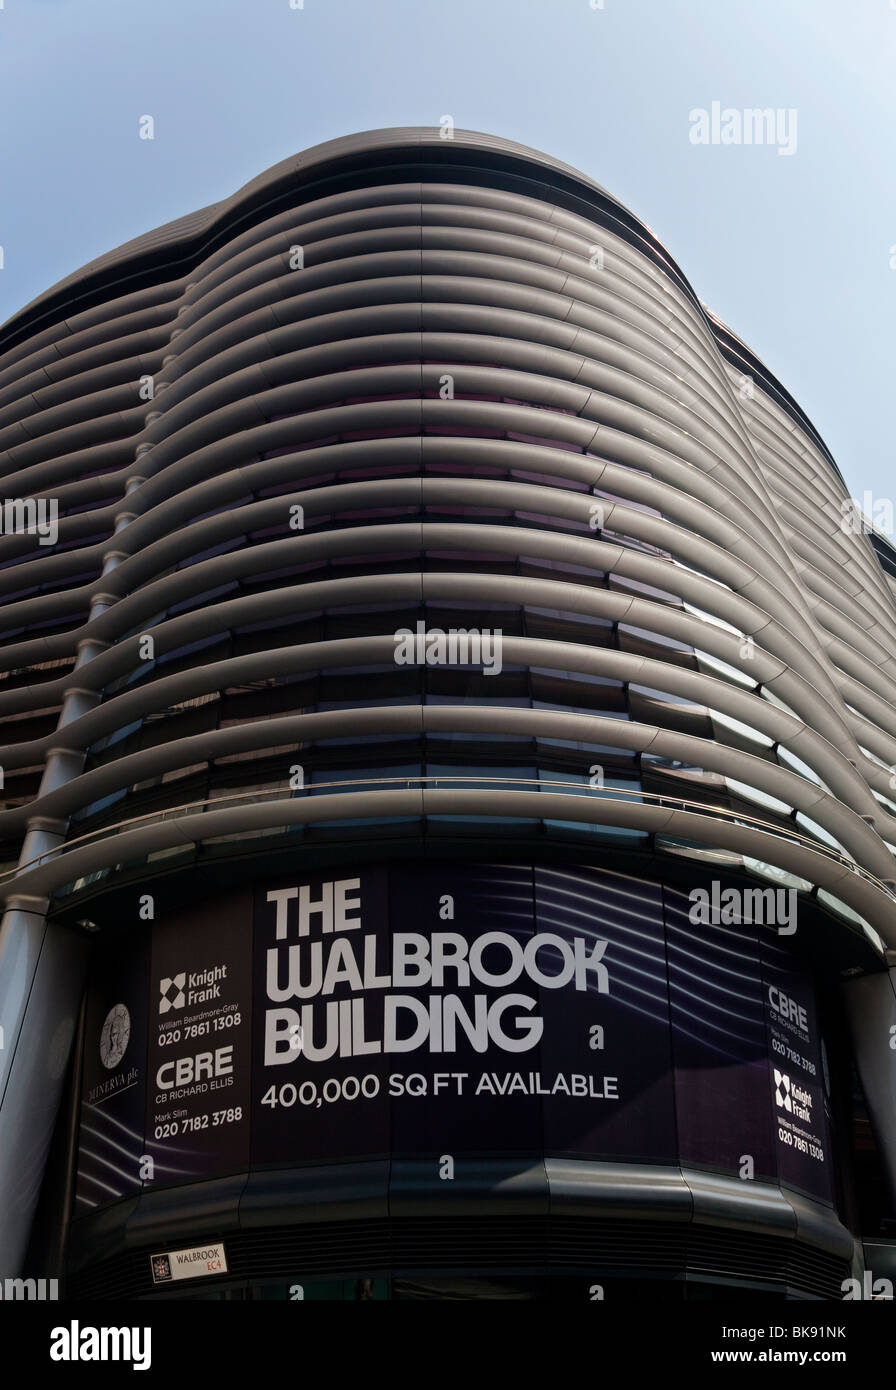 The Walbrook Building, London, UK - Stock Image